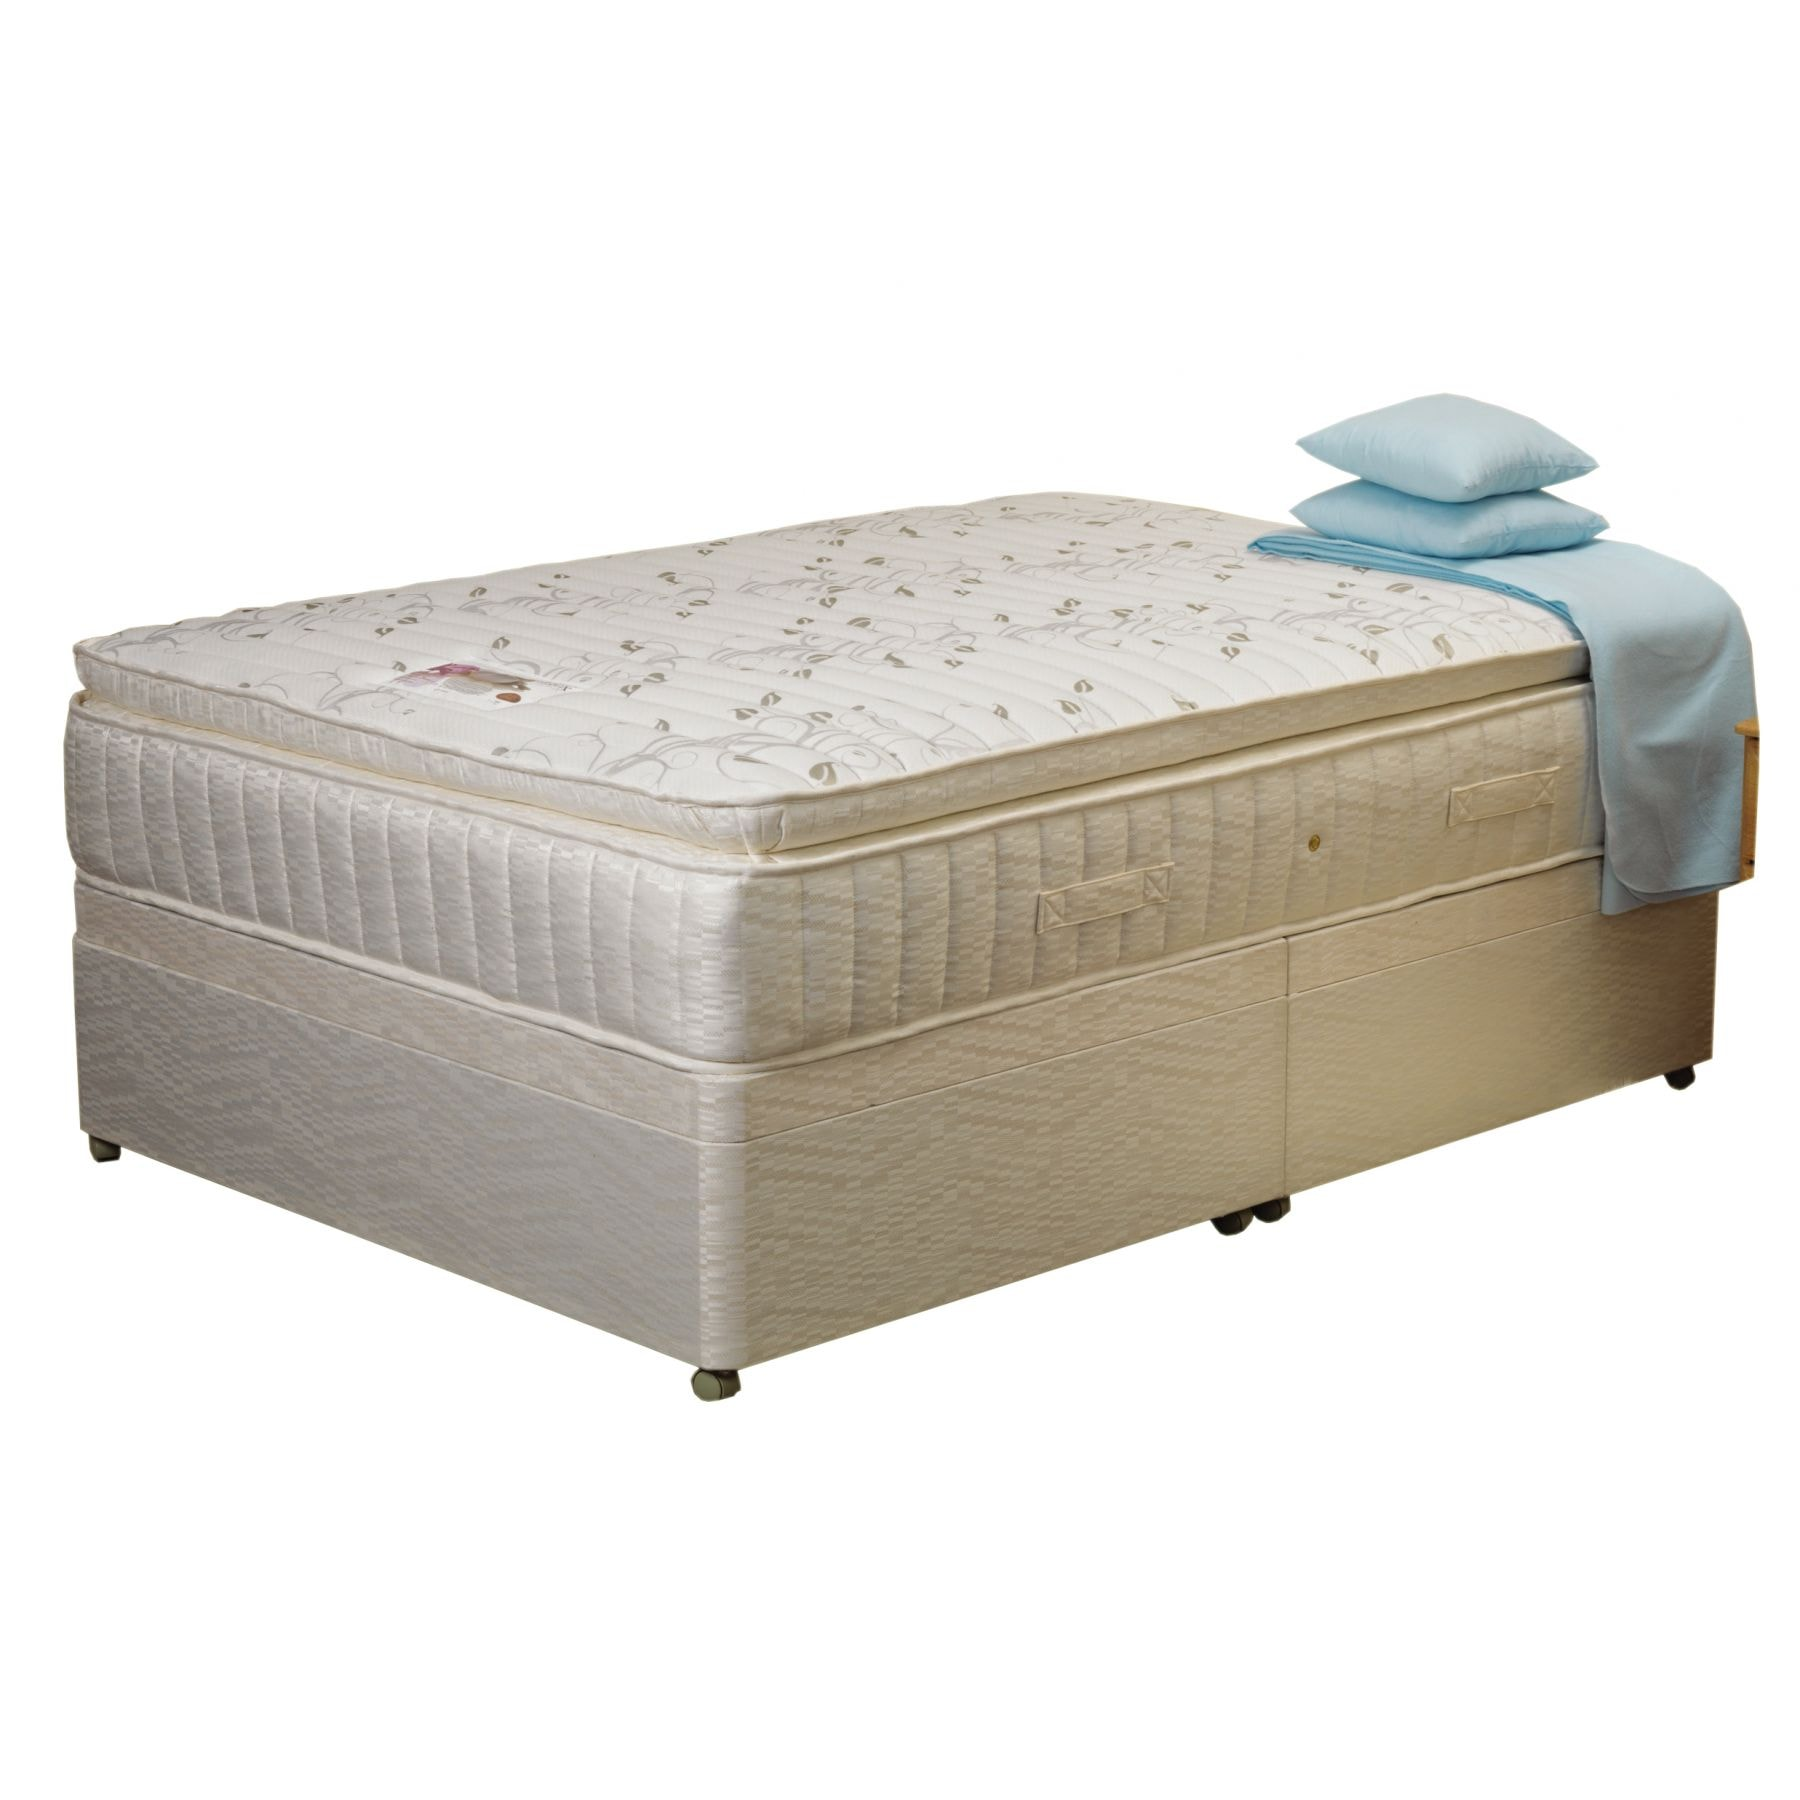 Lullatex 1200 divan base mattress for Divan bed base sale